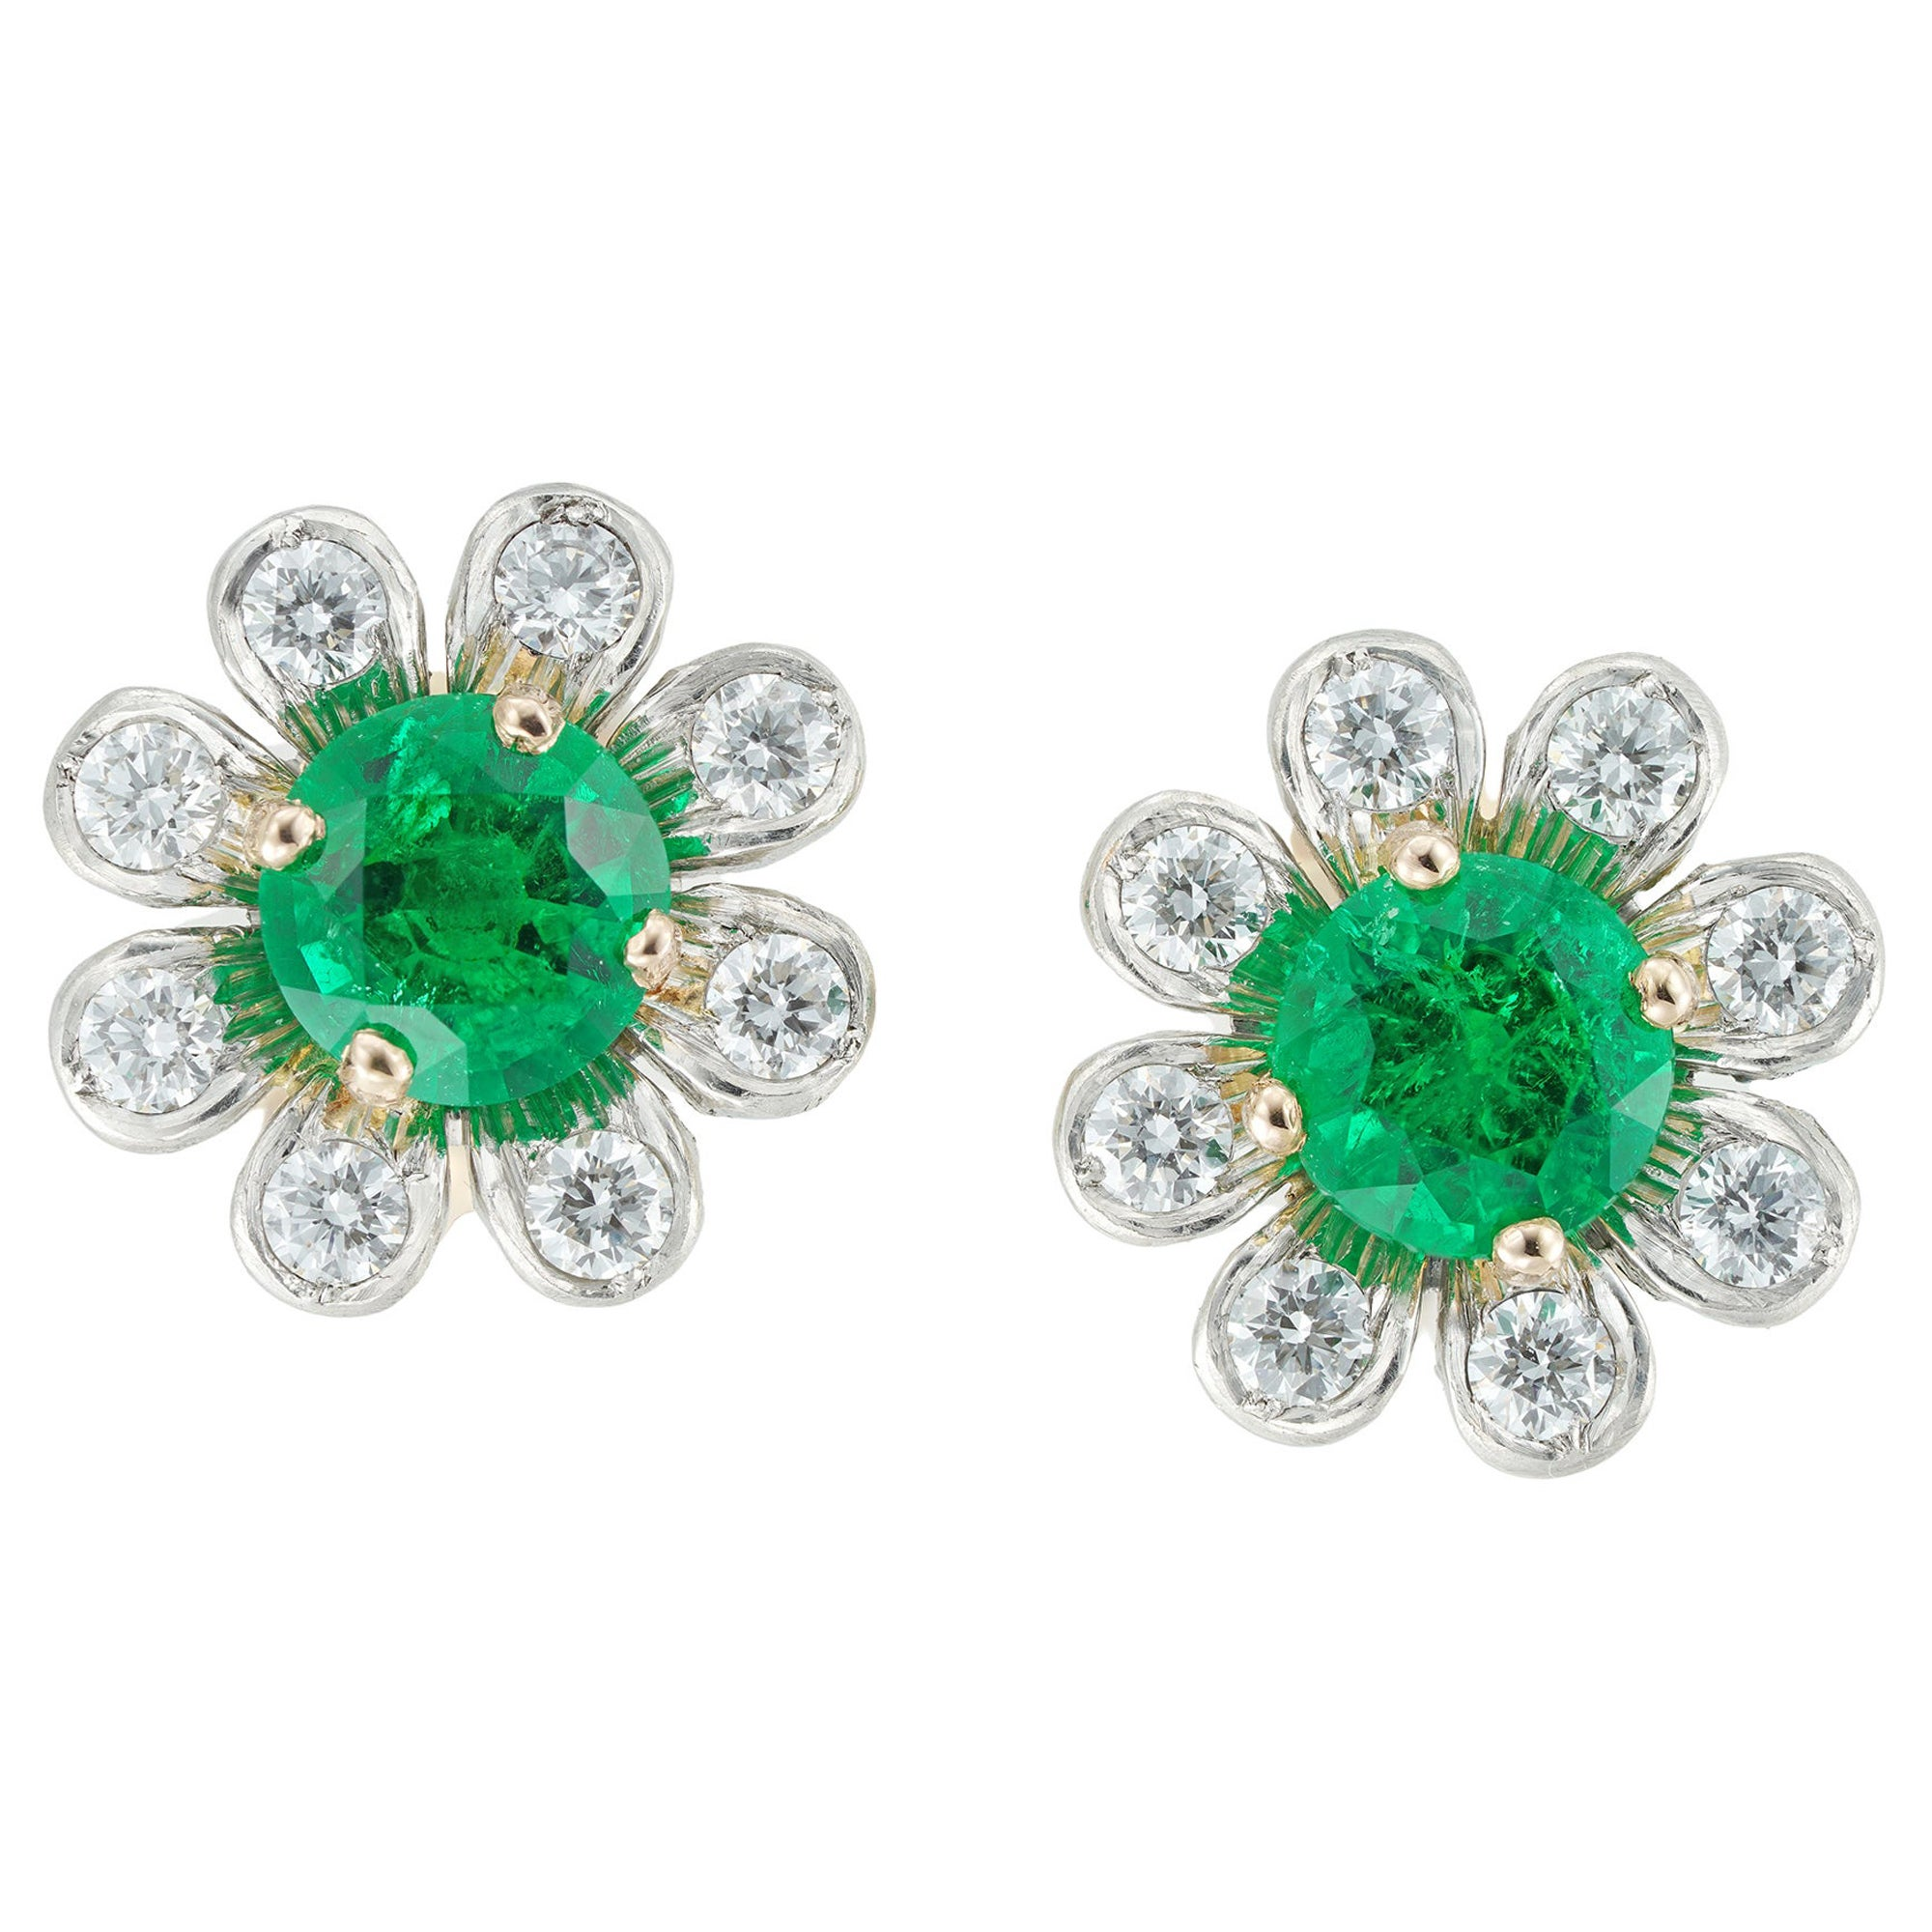 Pair of Emerald and Diamond Cluster Earrings